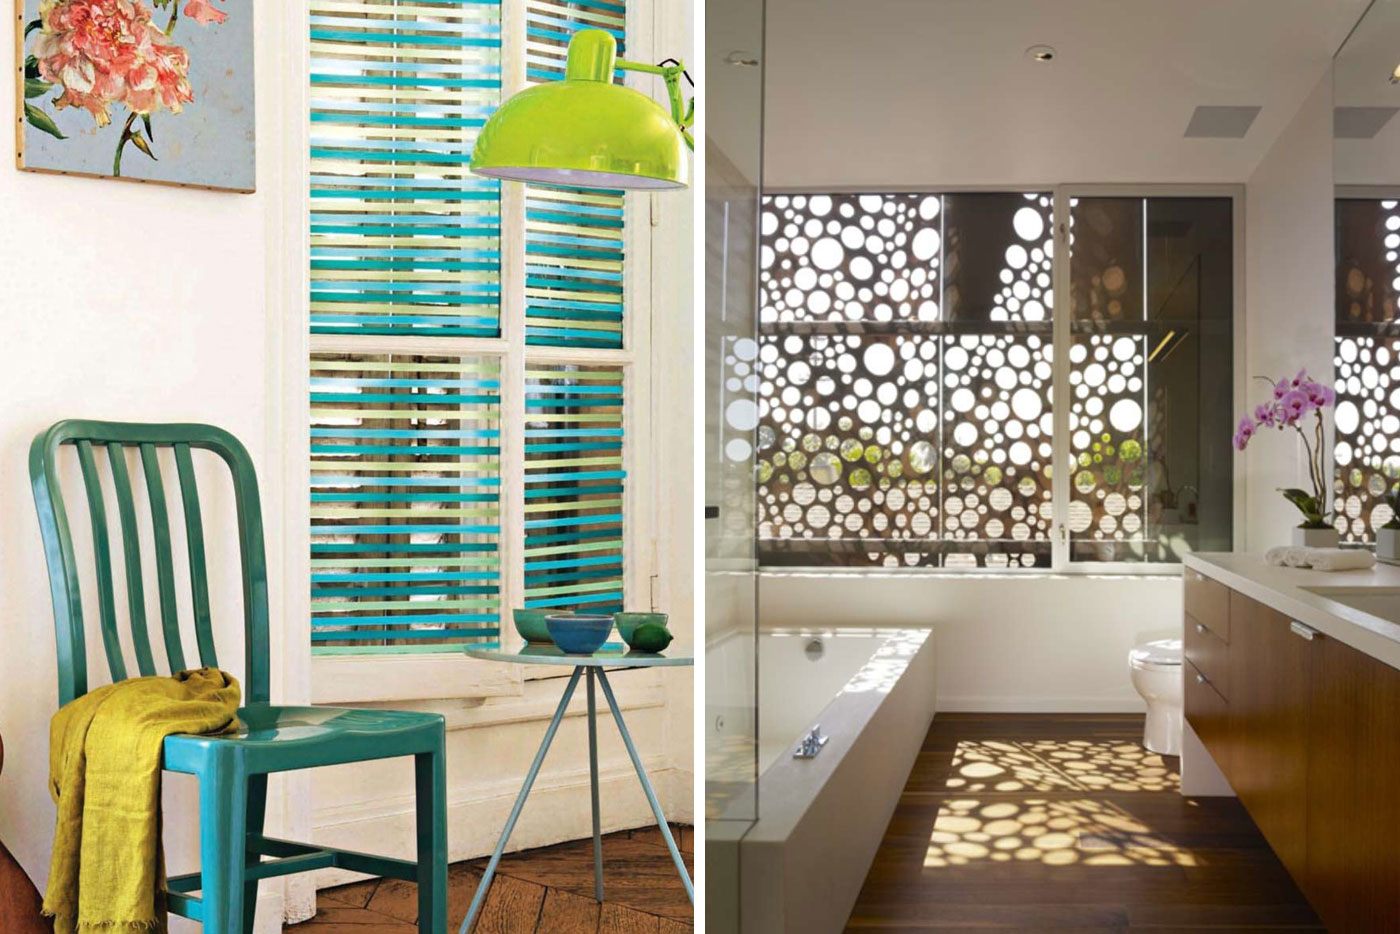 http://www.surroundyourself.com/decor/10-alternative-window-treatments/